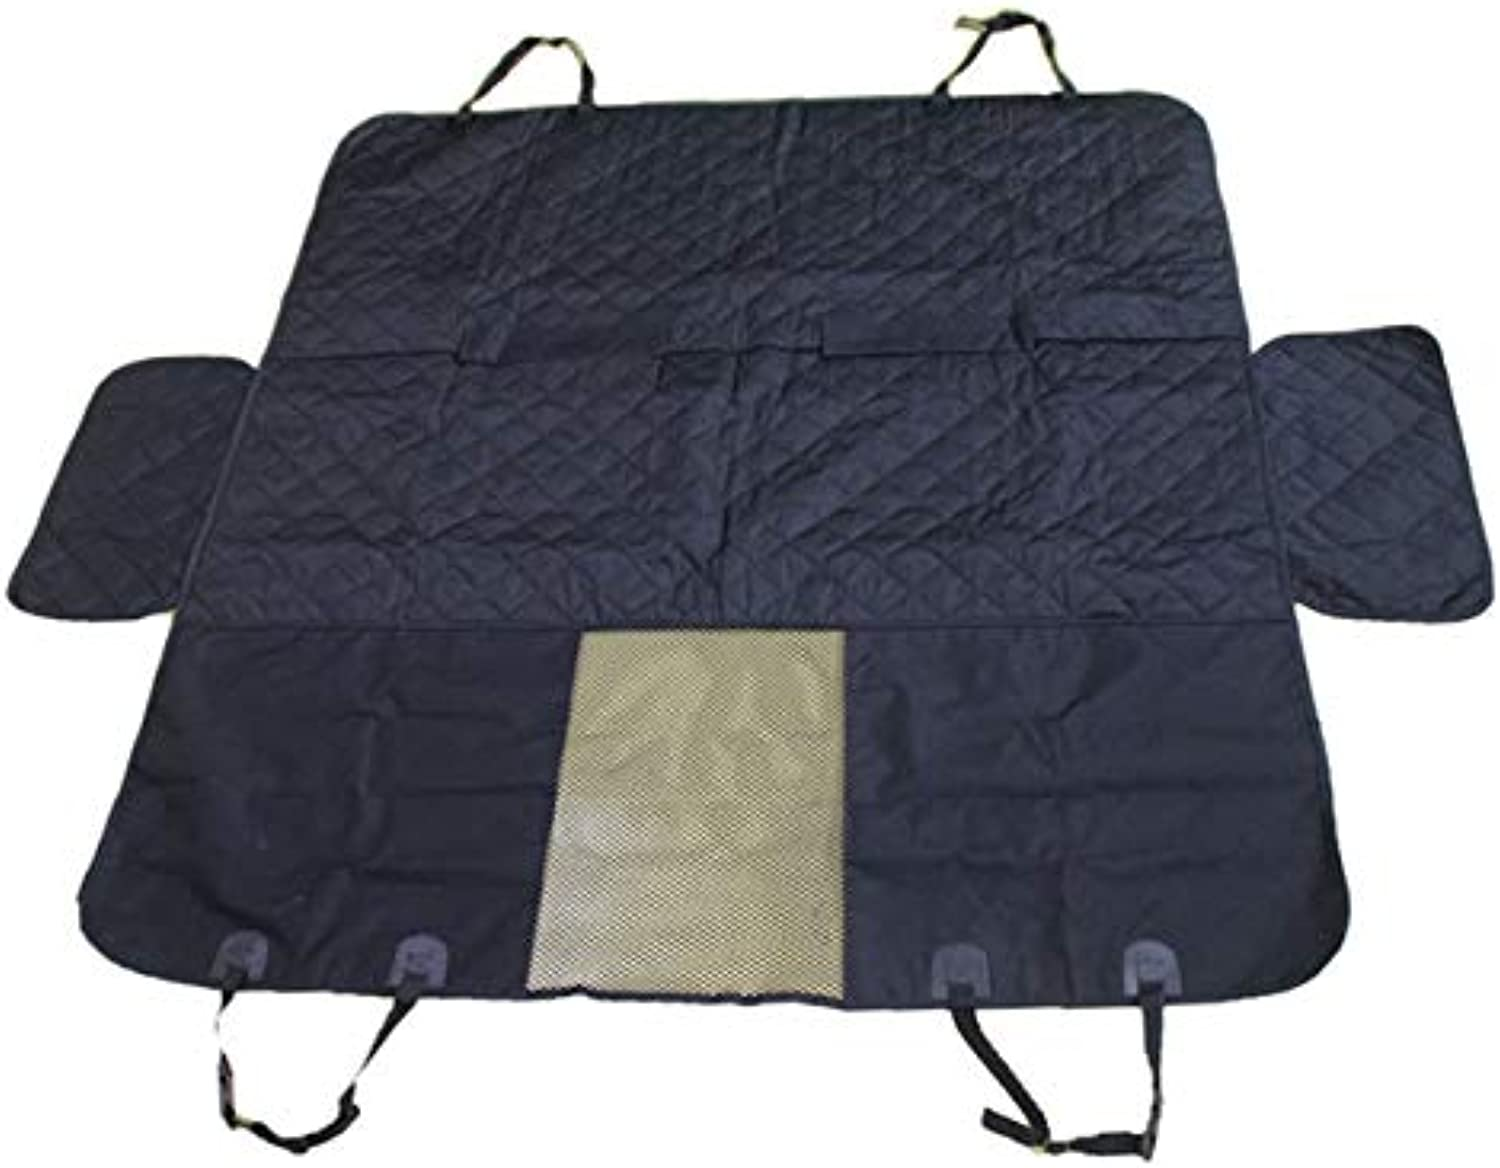 Pet car seat, FrontPet Quilted Dog Cargo Cover for SUV, Universal Fit for Any Pet Animal. Durable Liner Covers and Predects Your Vehicle, Regular,Black